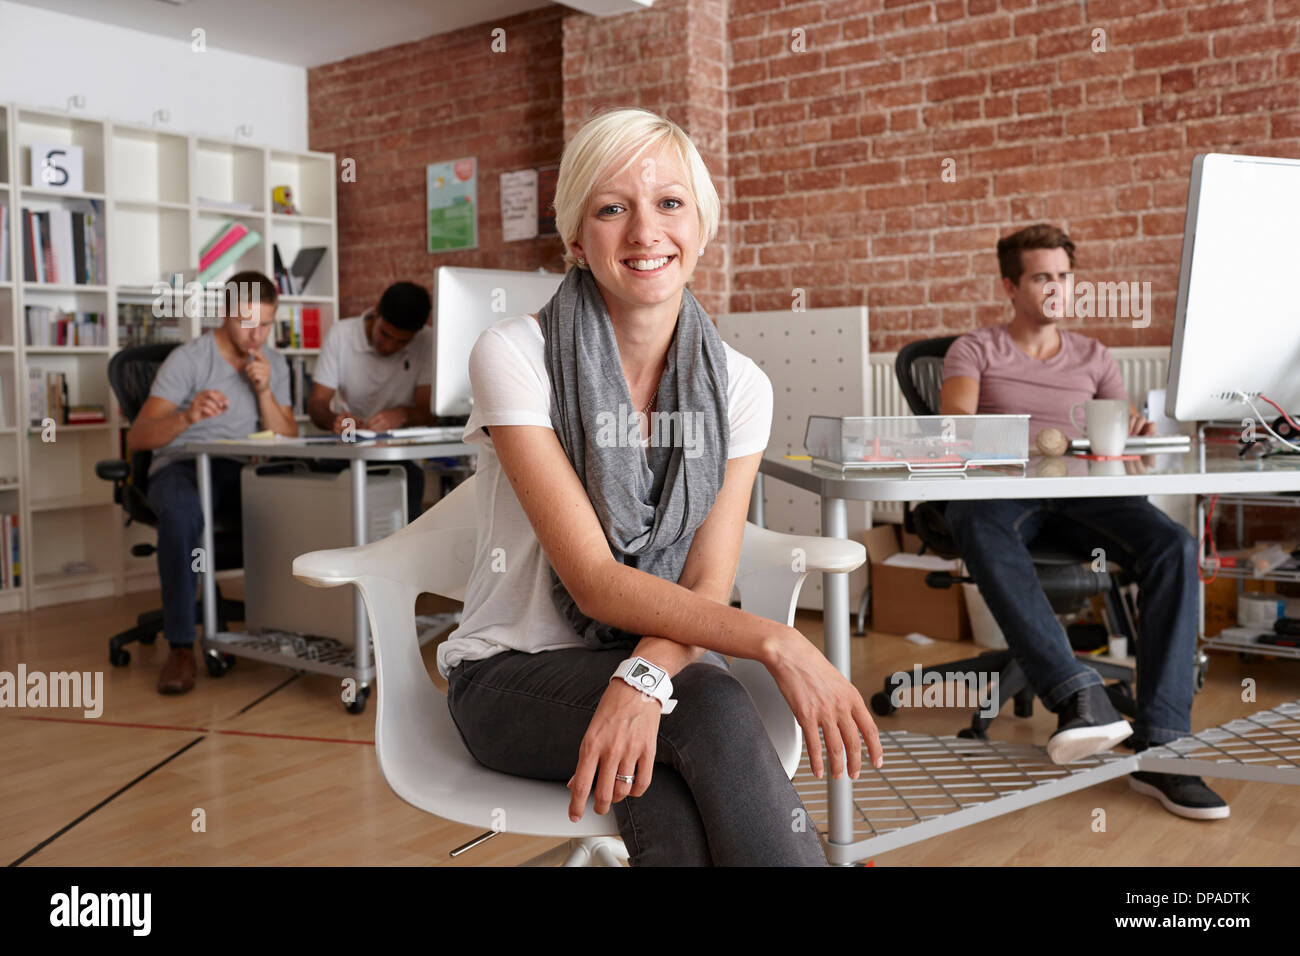 Portrait of mid adult woman sitting on chair in creative office - Stock Image